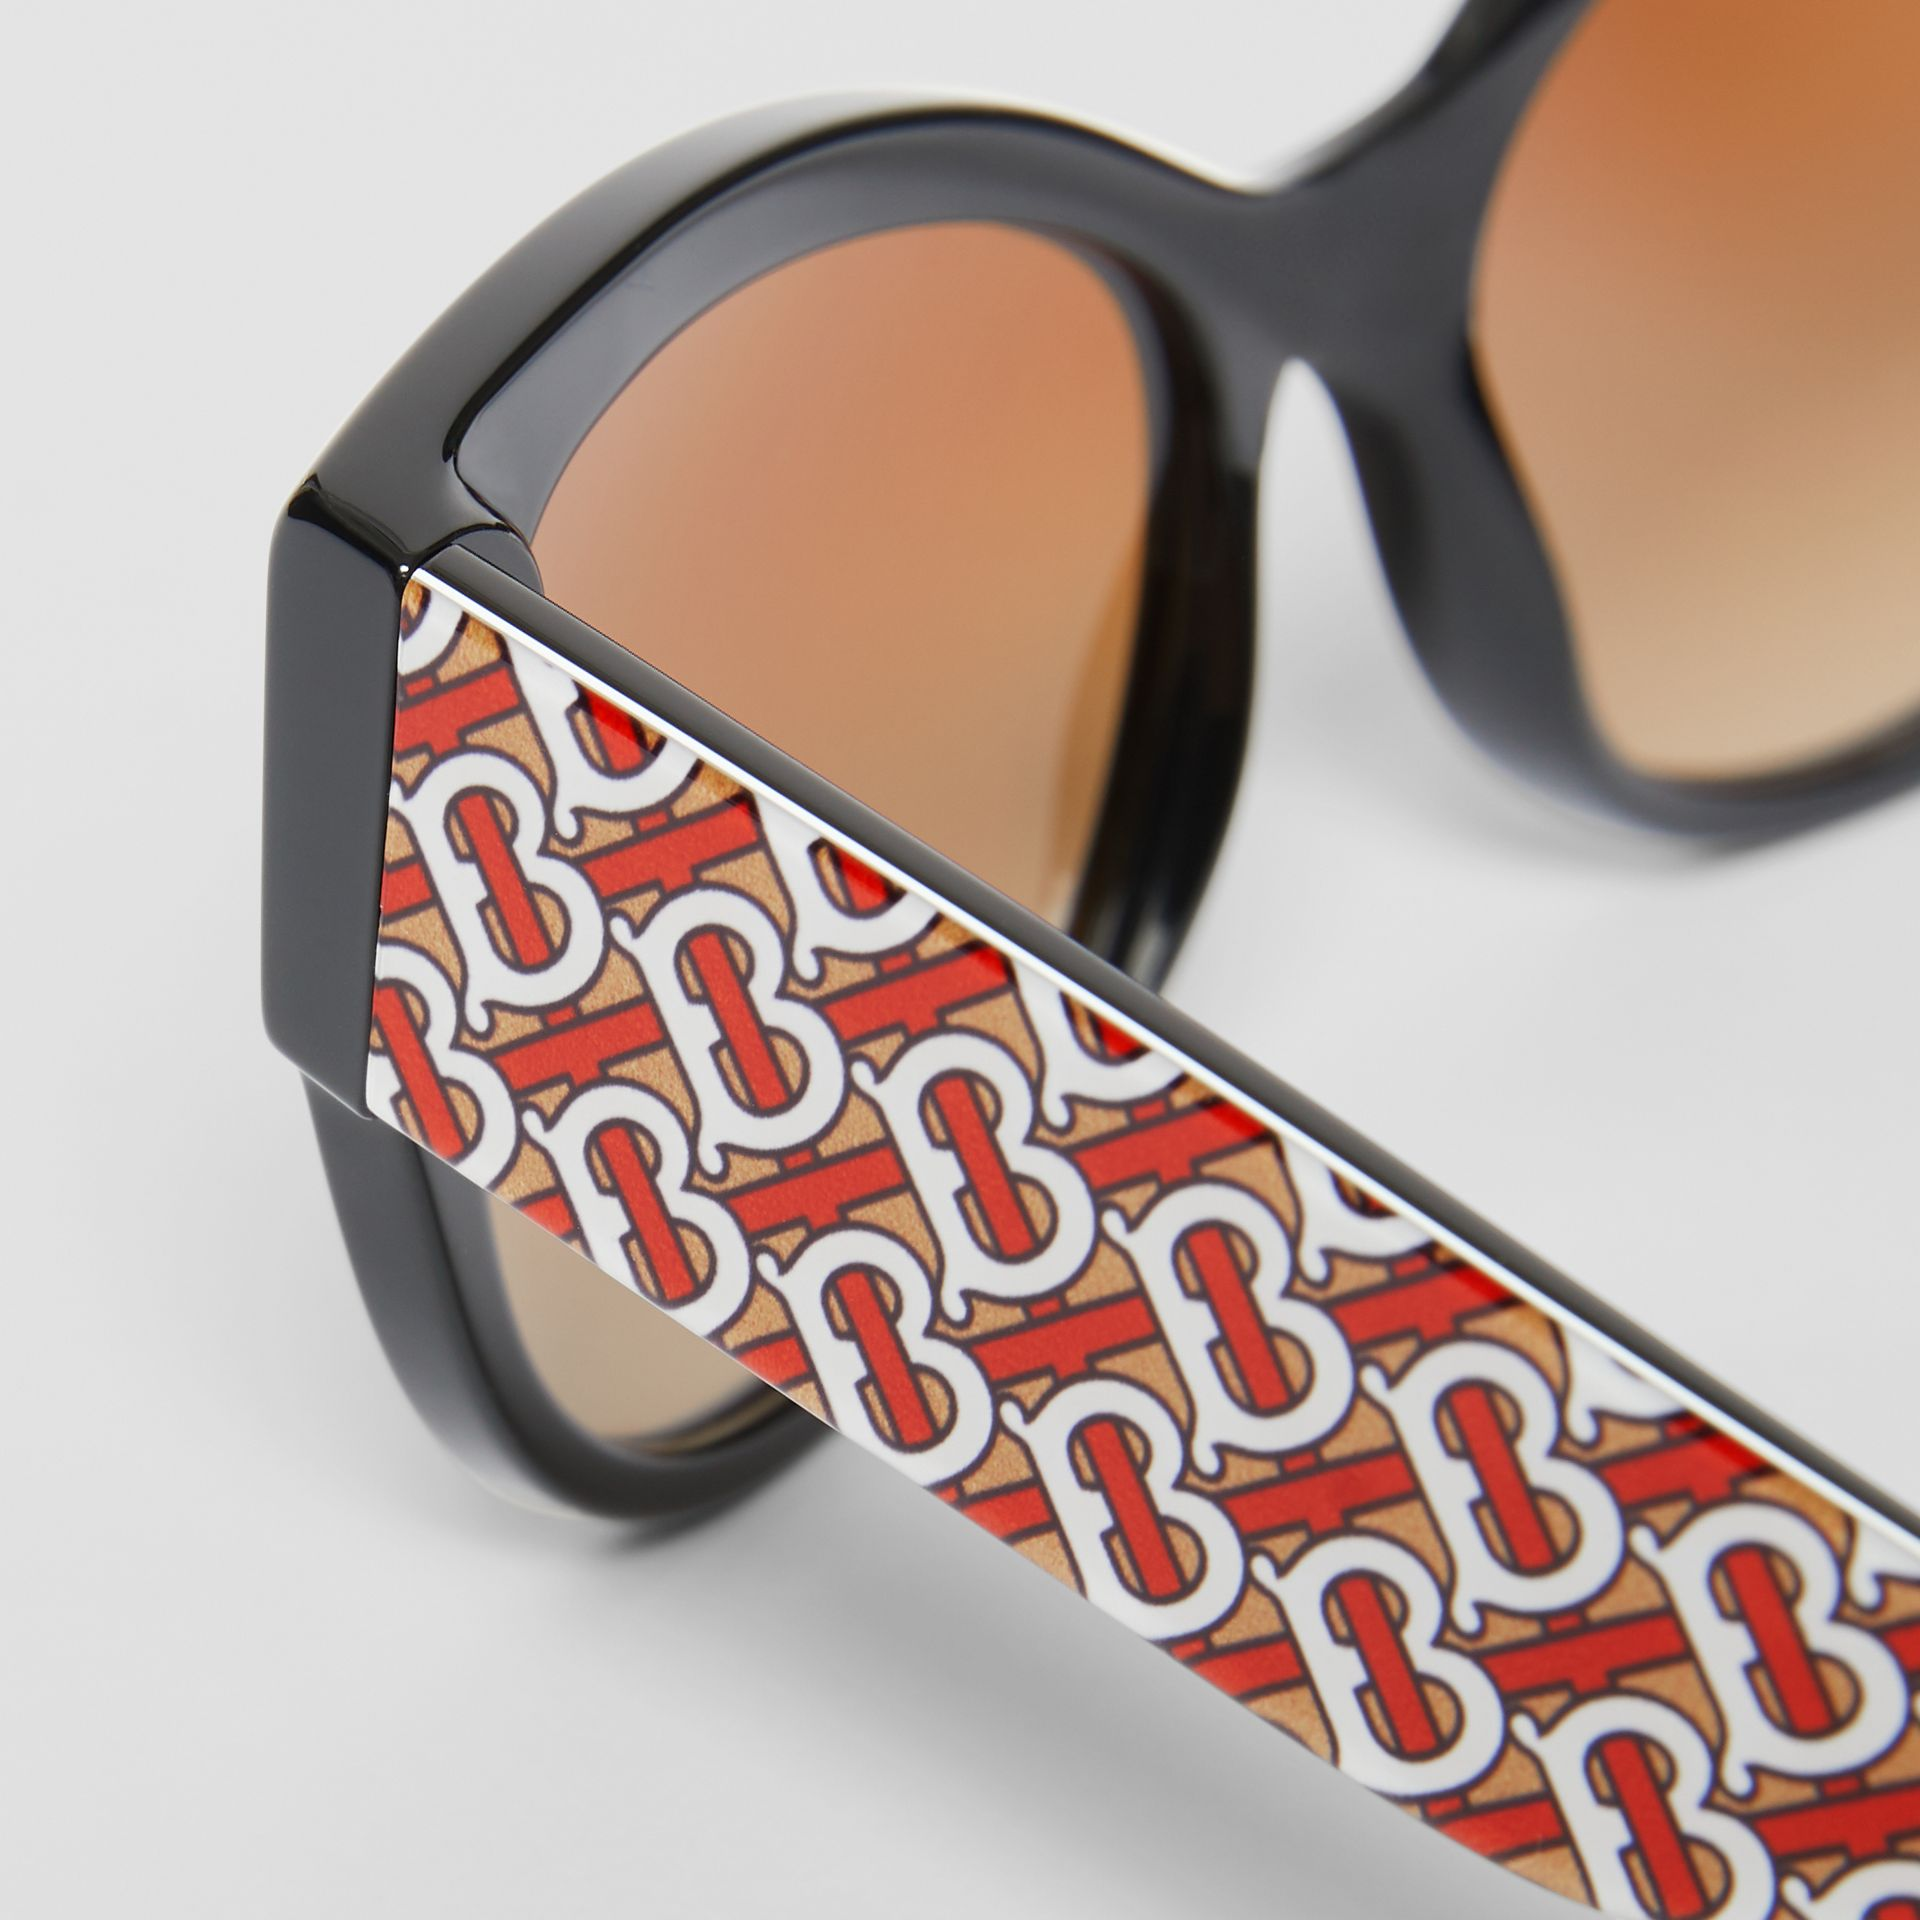 Monogram Detail Butterfly Frame Sunglasses in Black / Beige - Women | Burberry - gallery image 1